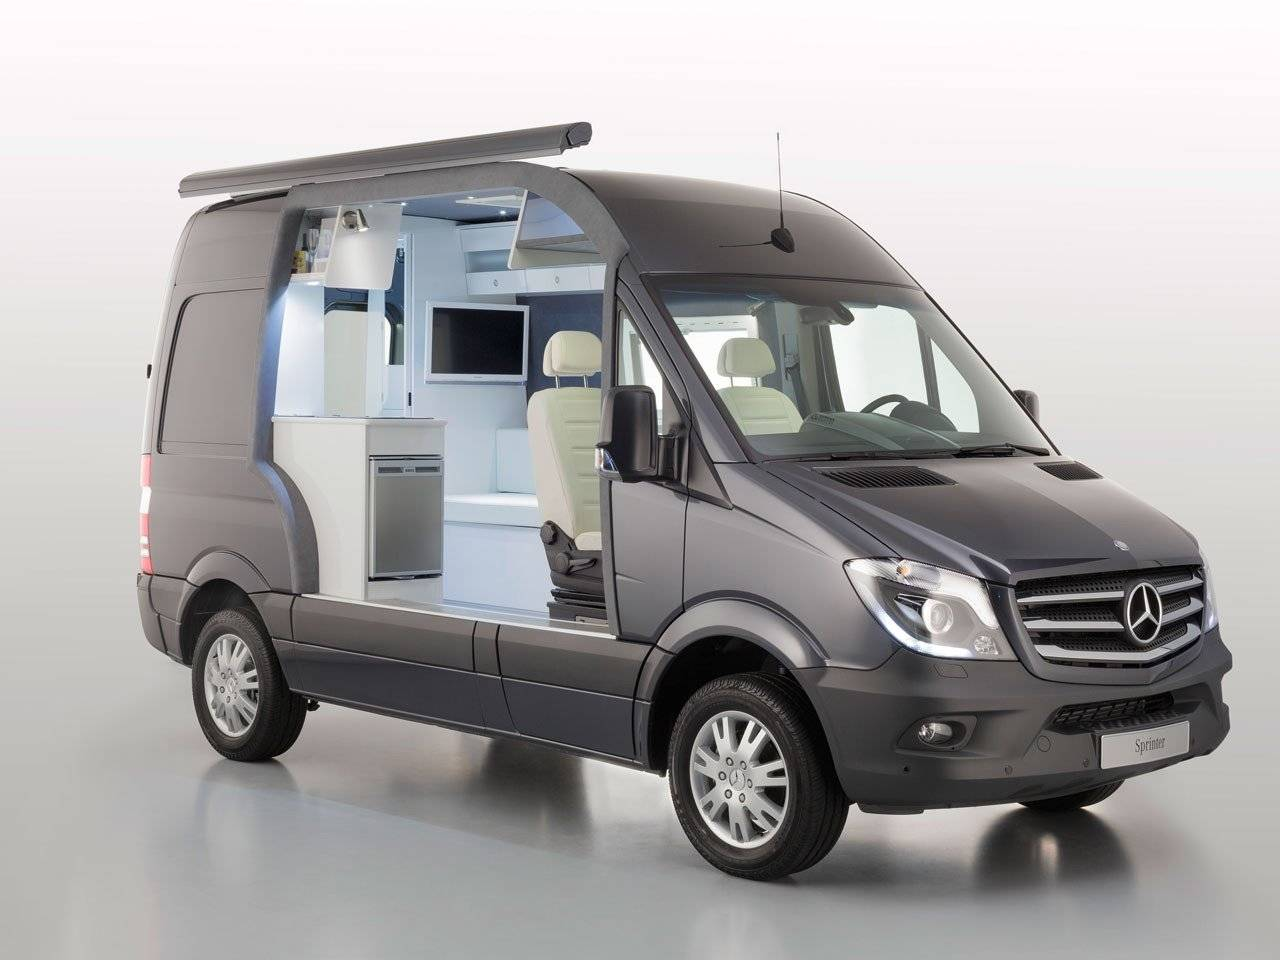 roadtrip maken met de nieuwe mercedes sprinter autonieuws. Black Bedroom Furniture Sets. Home Design Ideas